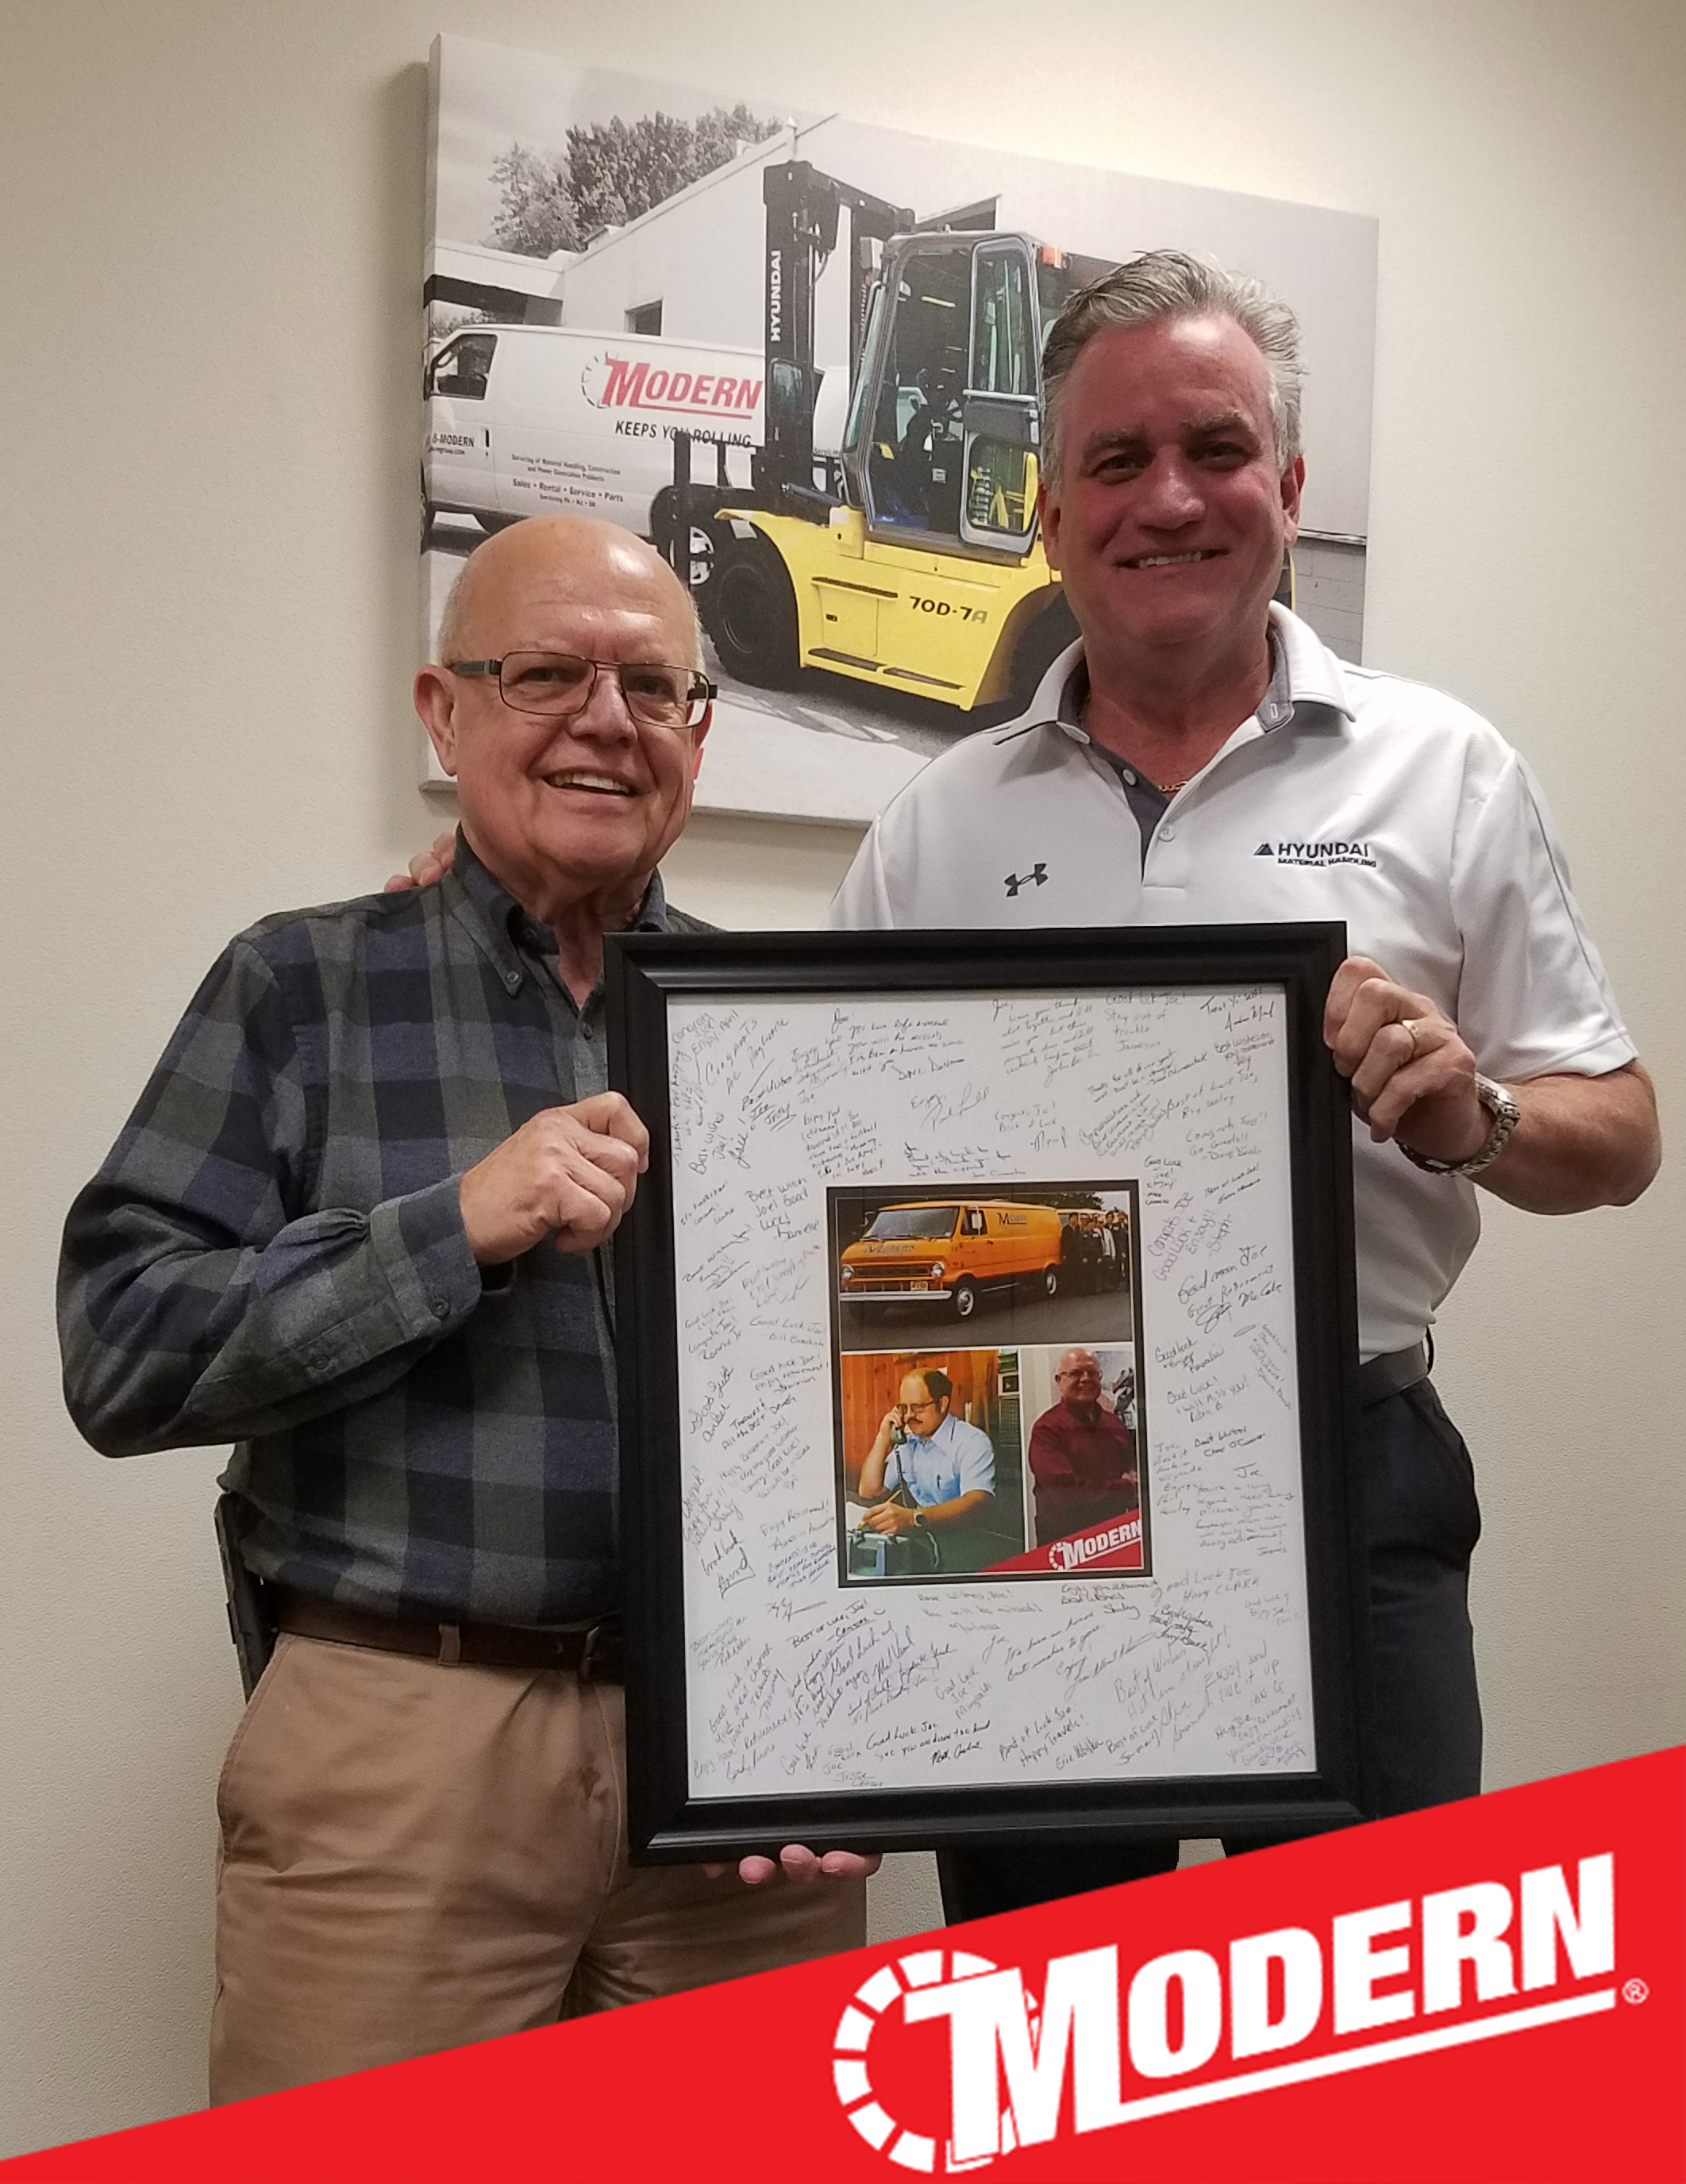 JOE DUTKO, SAFETY DIRECTOR AND FACILITIES MANAGER, RETIRES FROM MODERN GROUP AFTER 43 YEARS